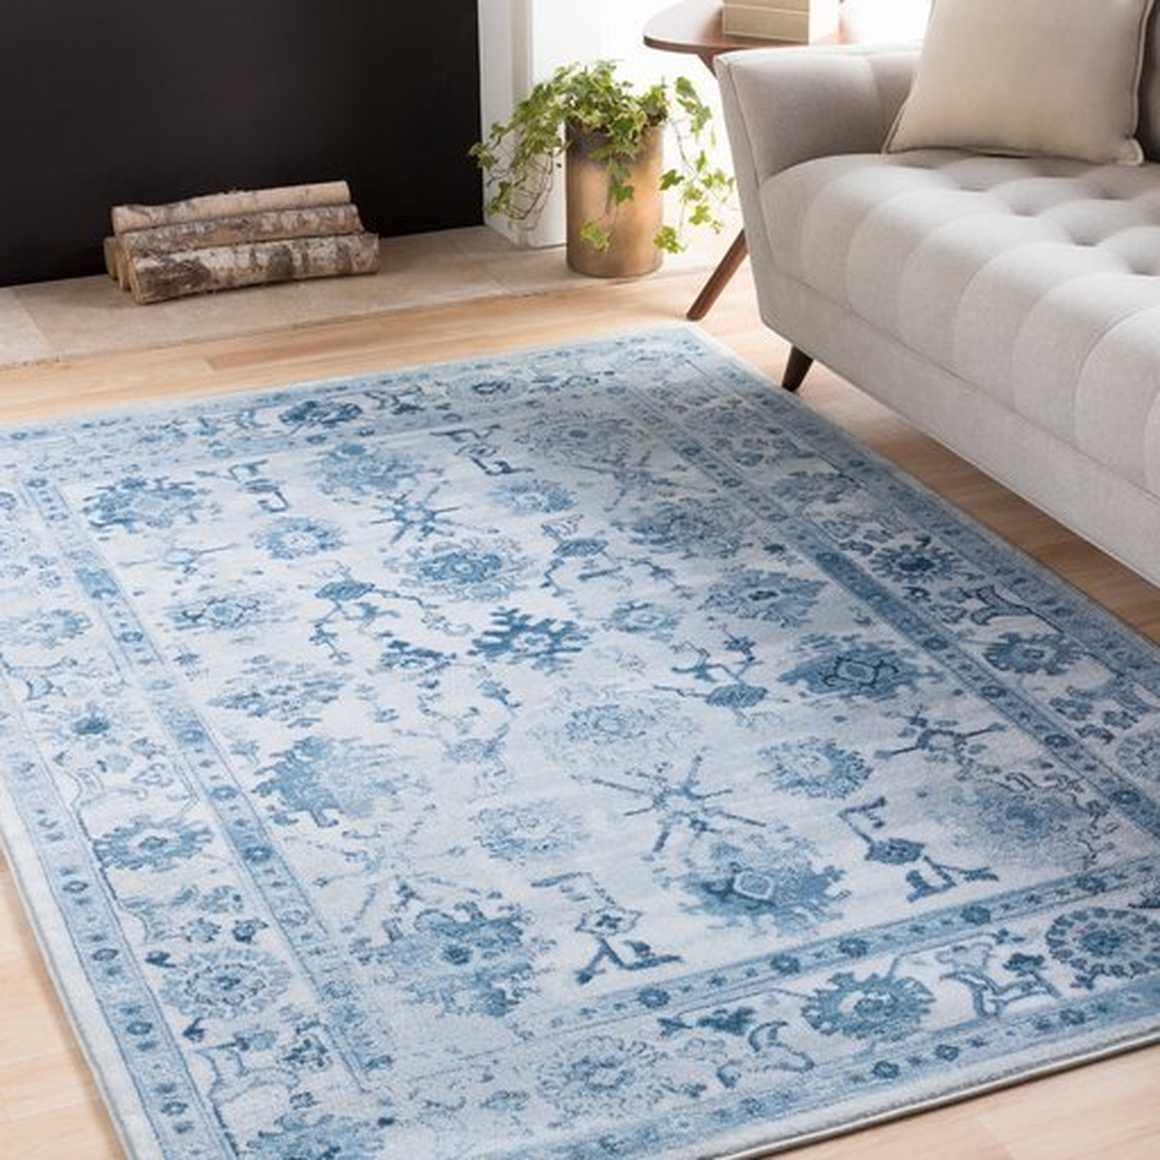 Nova 7 10x10 6 Area Rug Neva Home Area Rugs Blue Area Rugs Rugs